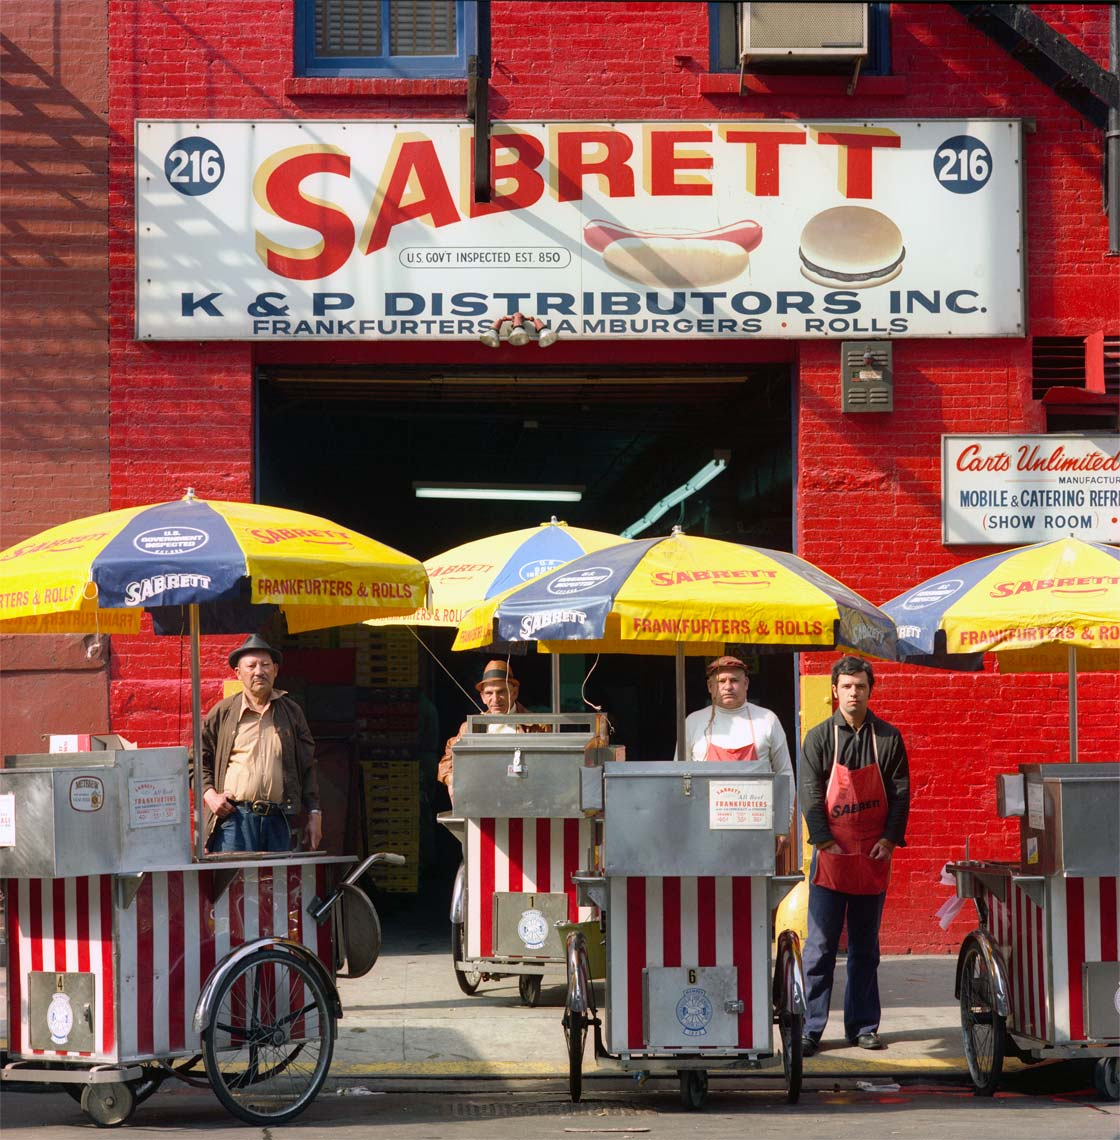 SABRETT_HOT_DOG_VENDORS_NEW_YORK_NY-DUP1.jpg